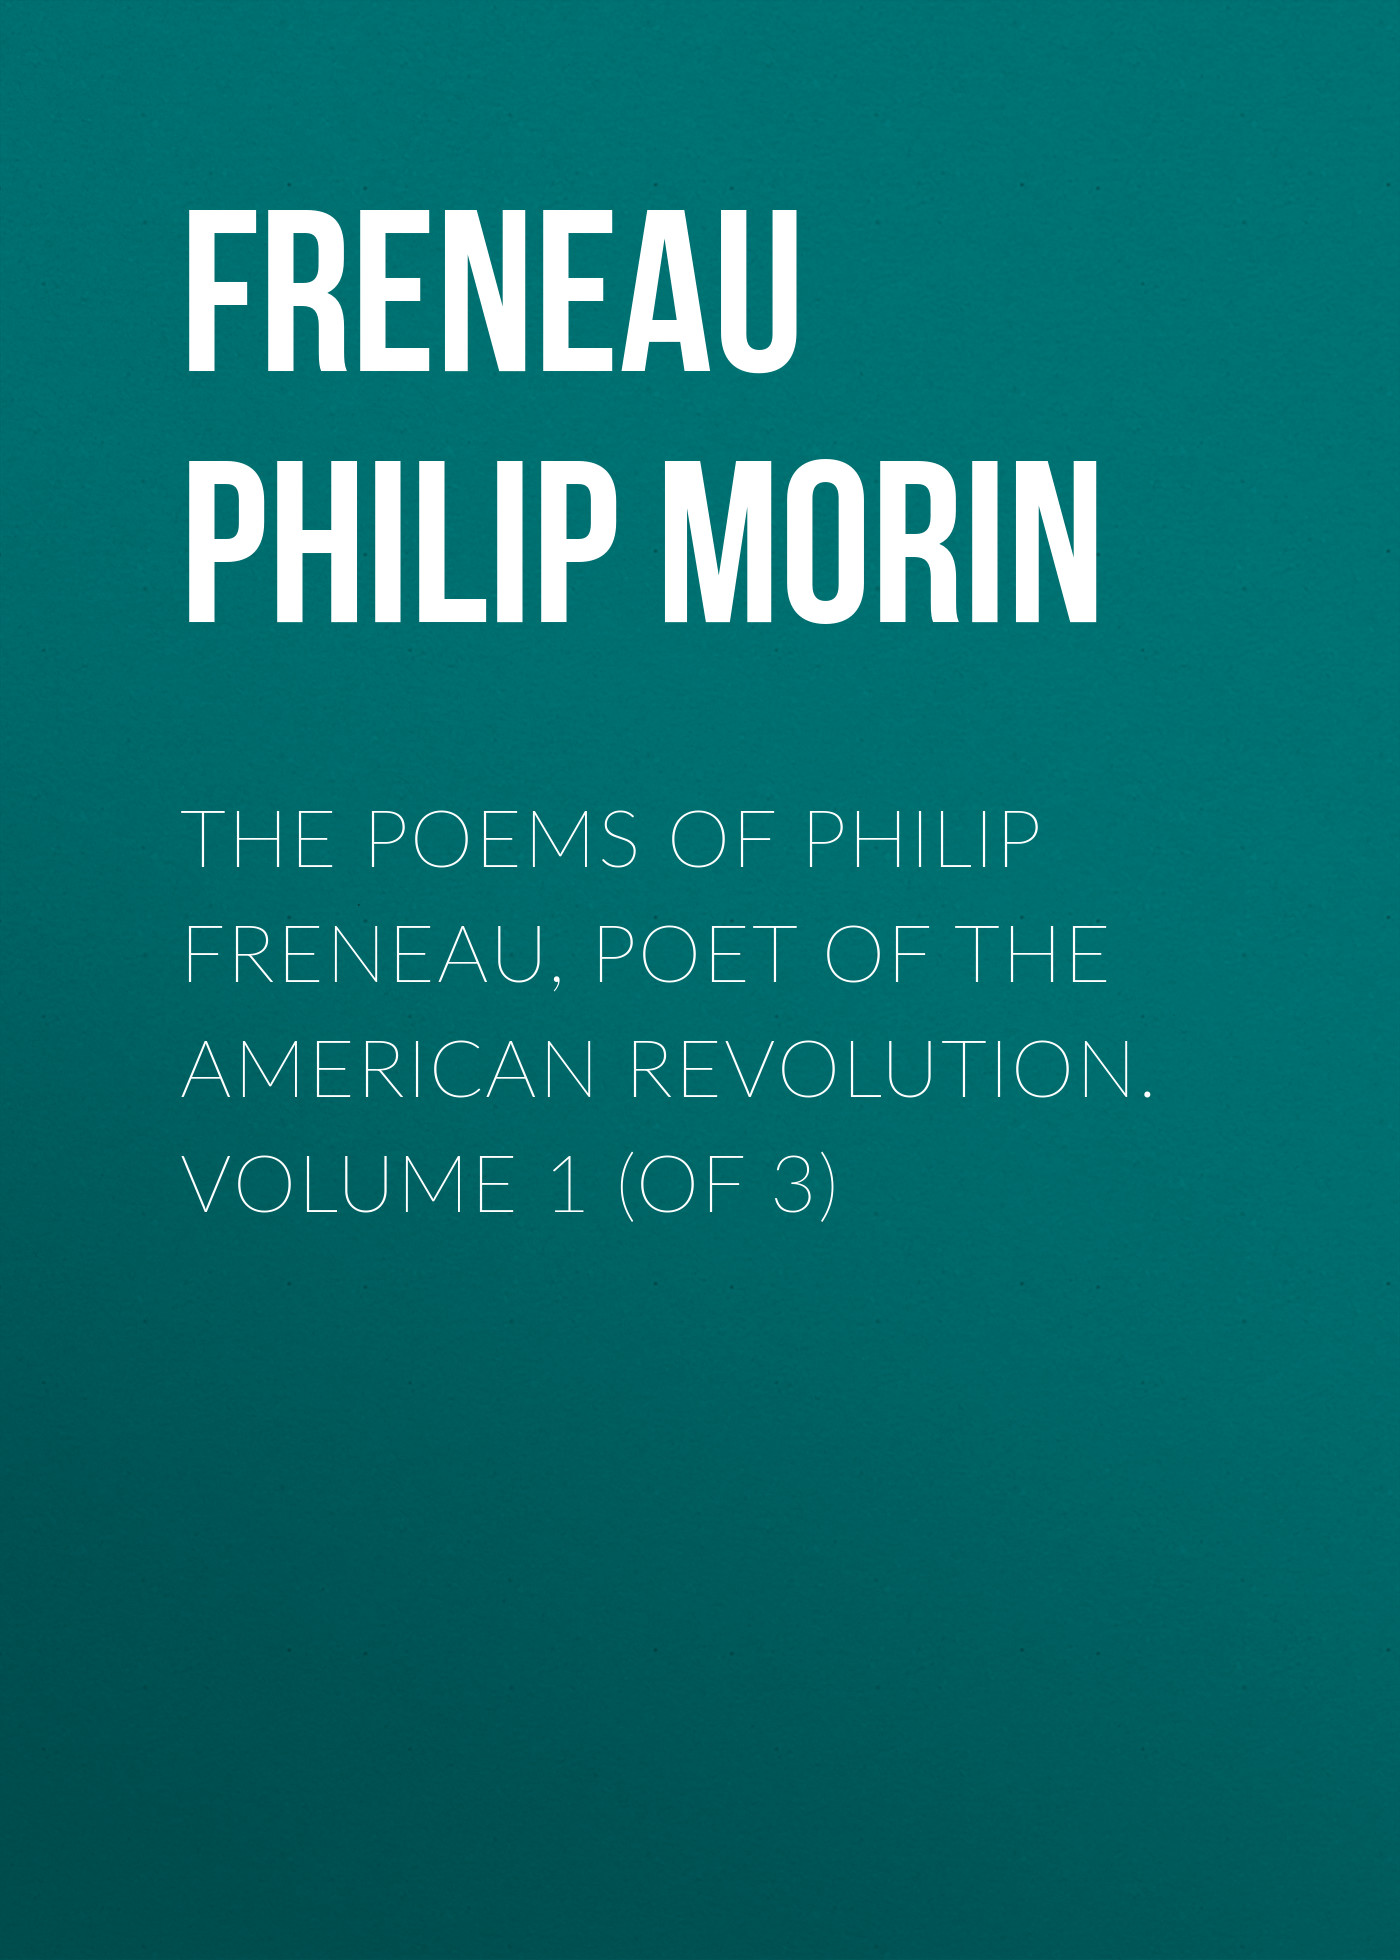 Freneau Philip Morin The Poems of Philip Freneau, Poet of the American Revolution. Volume 1 (of 3) the secrets of droon volume 1 books 1 3 page 8